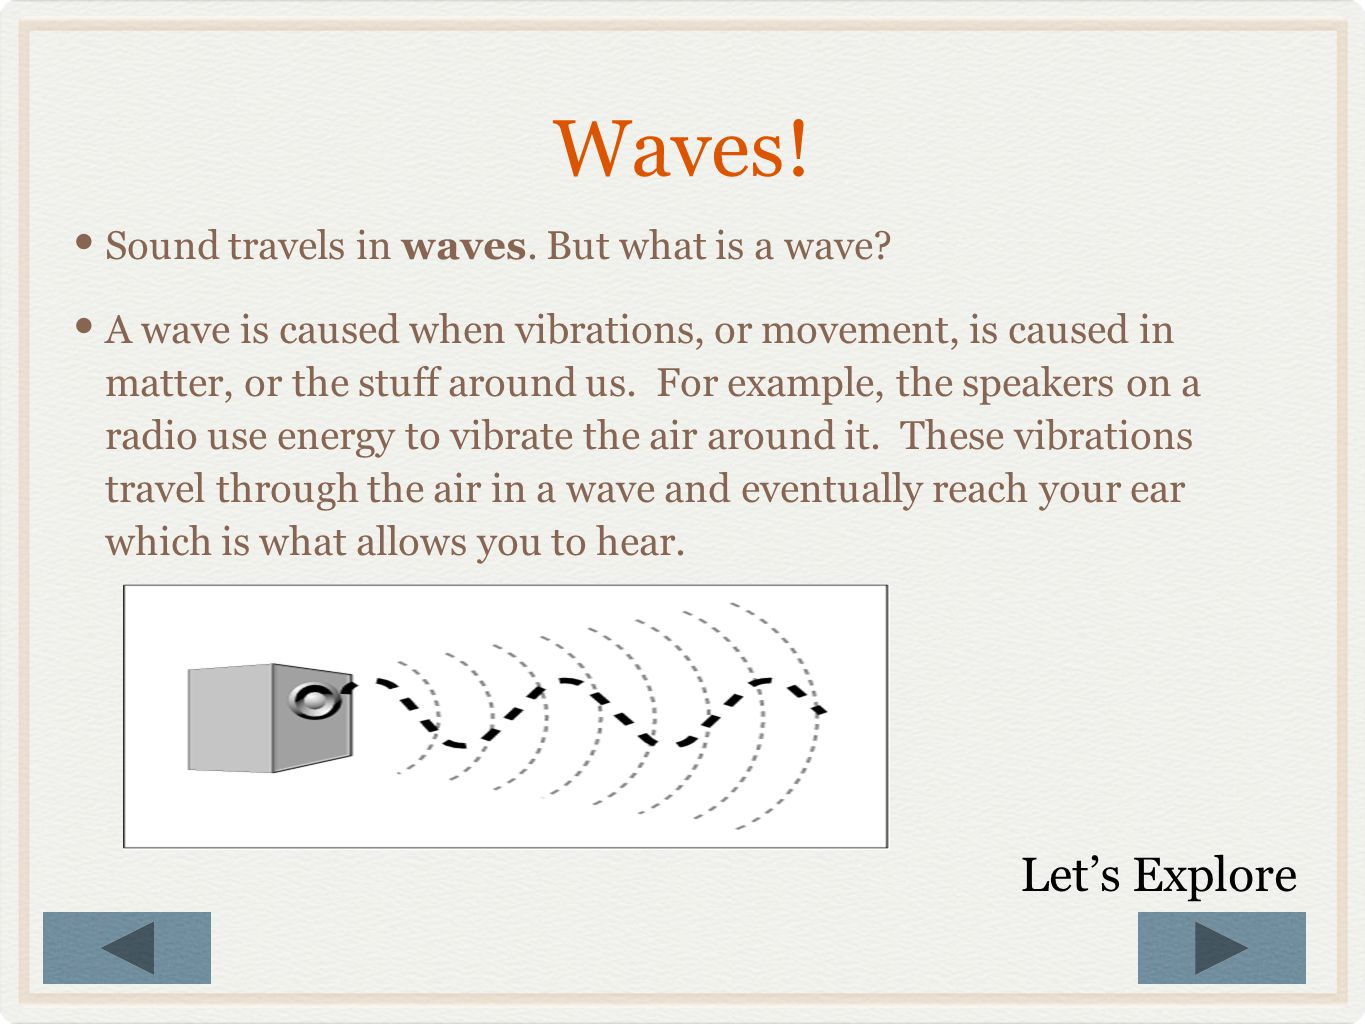 Waves! Let's Explore Sound travels in waves. But what is a wave